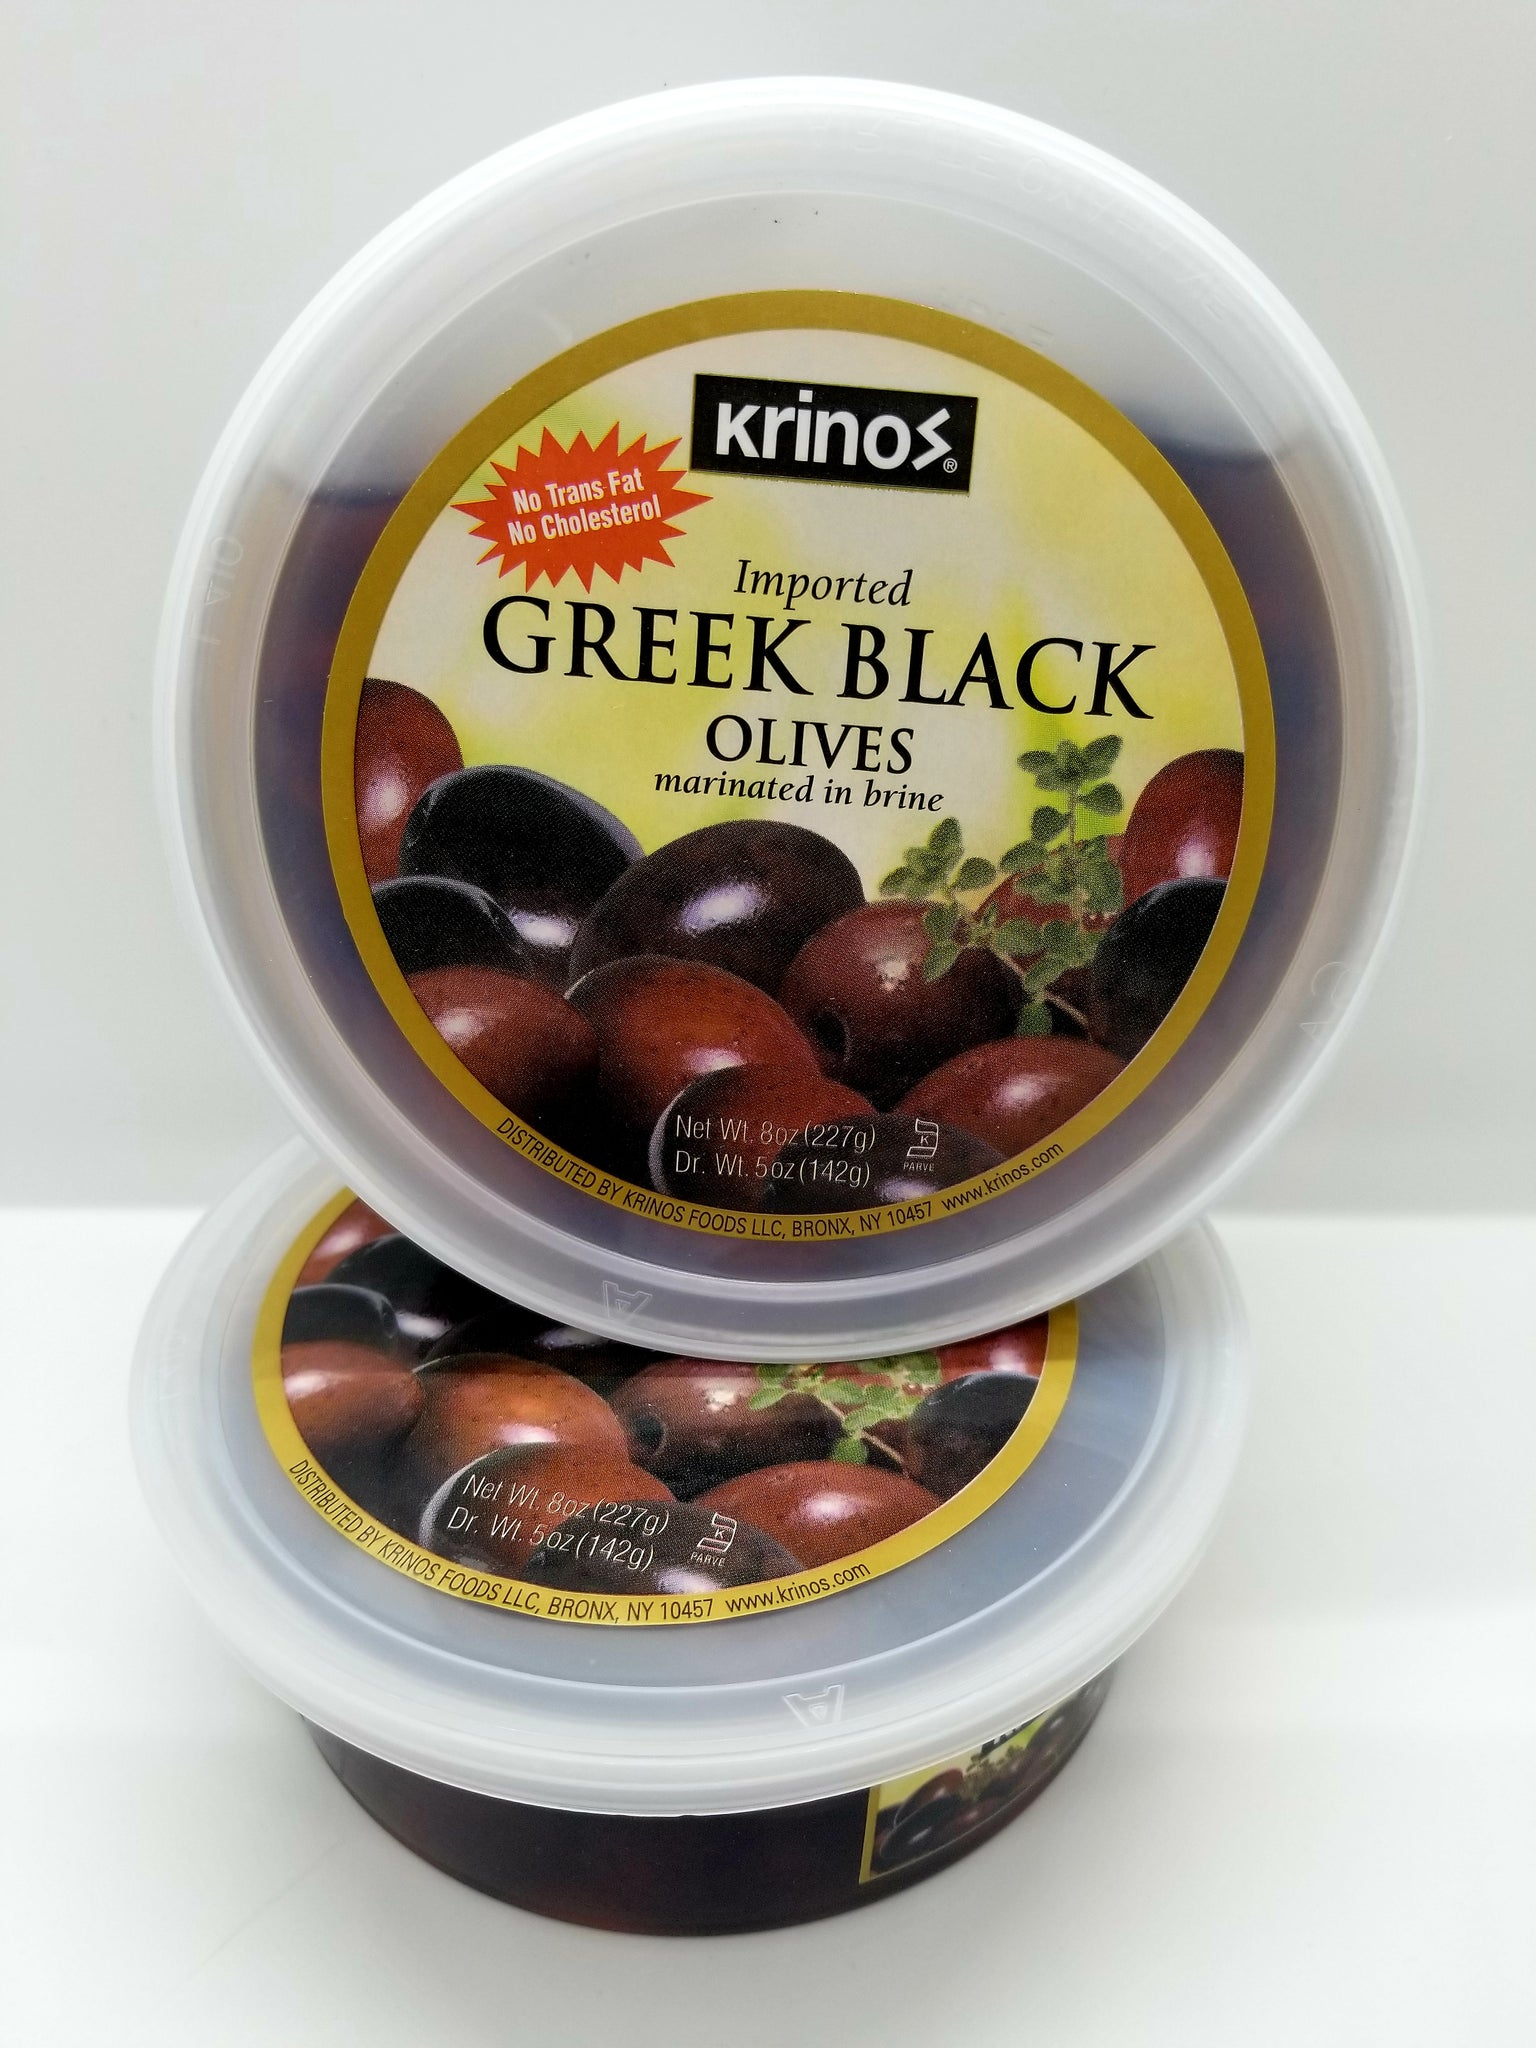 Krinos Greek Black Olives